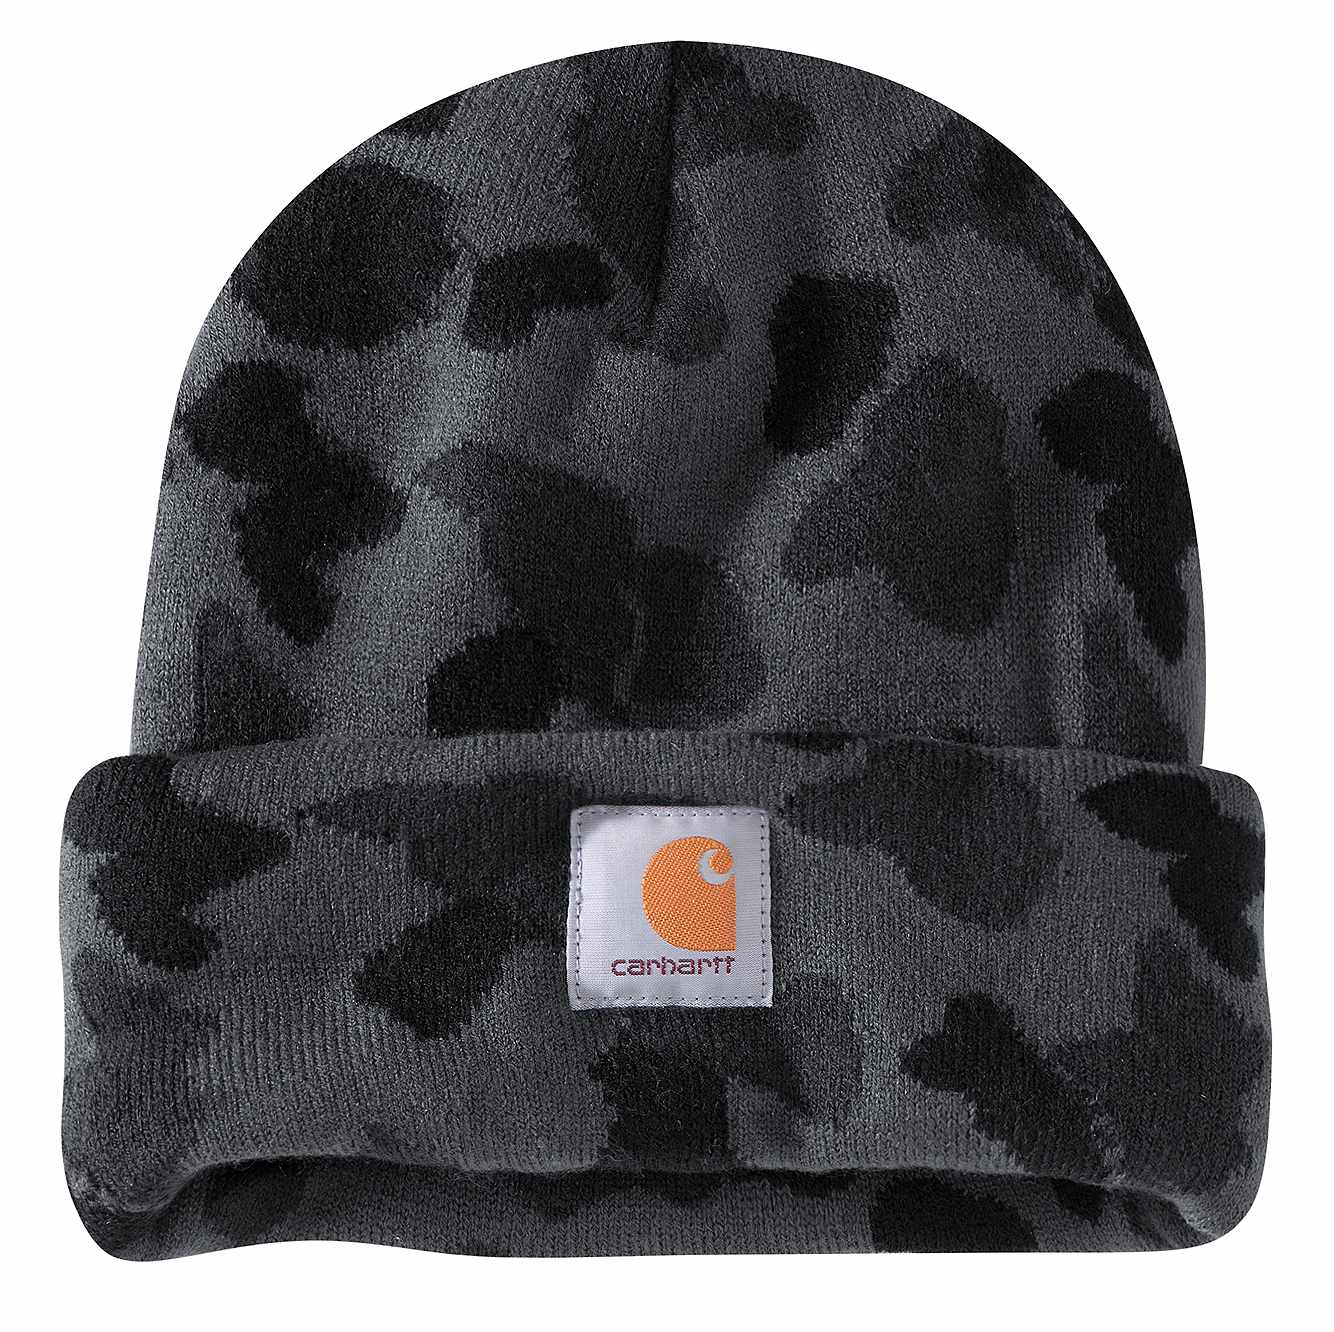 Picture of Carhartt® Knit Camo Beanie in Black Duck Camo